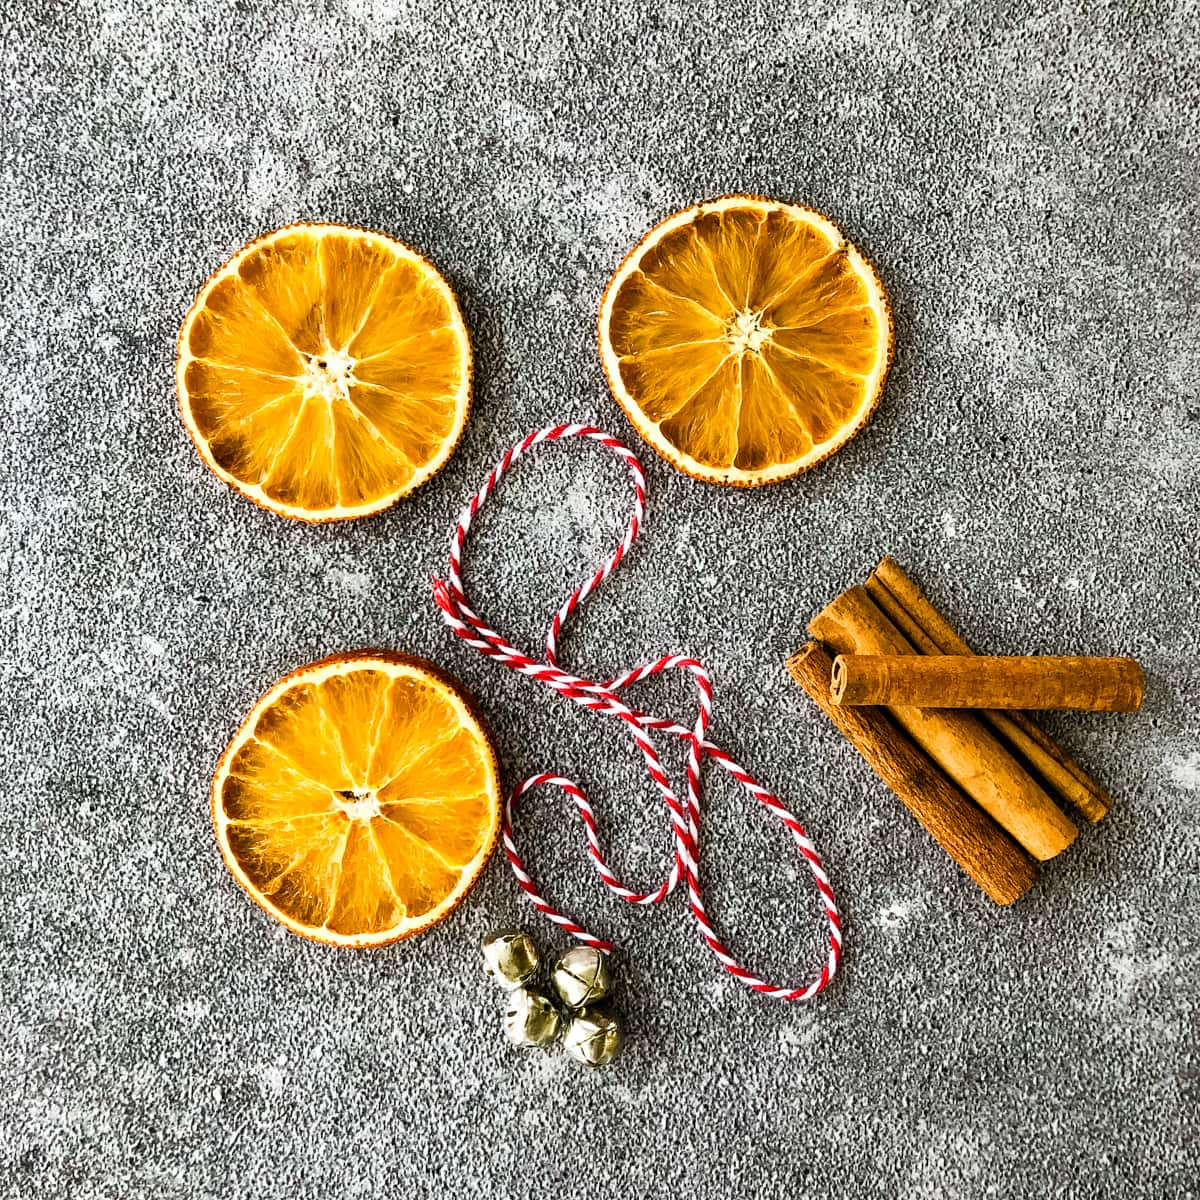 Cinnamon Stick and Orange Slice Ornaments